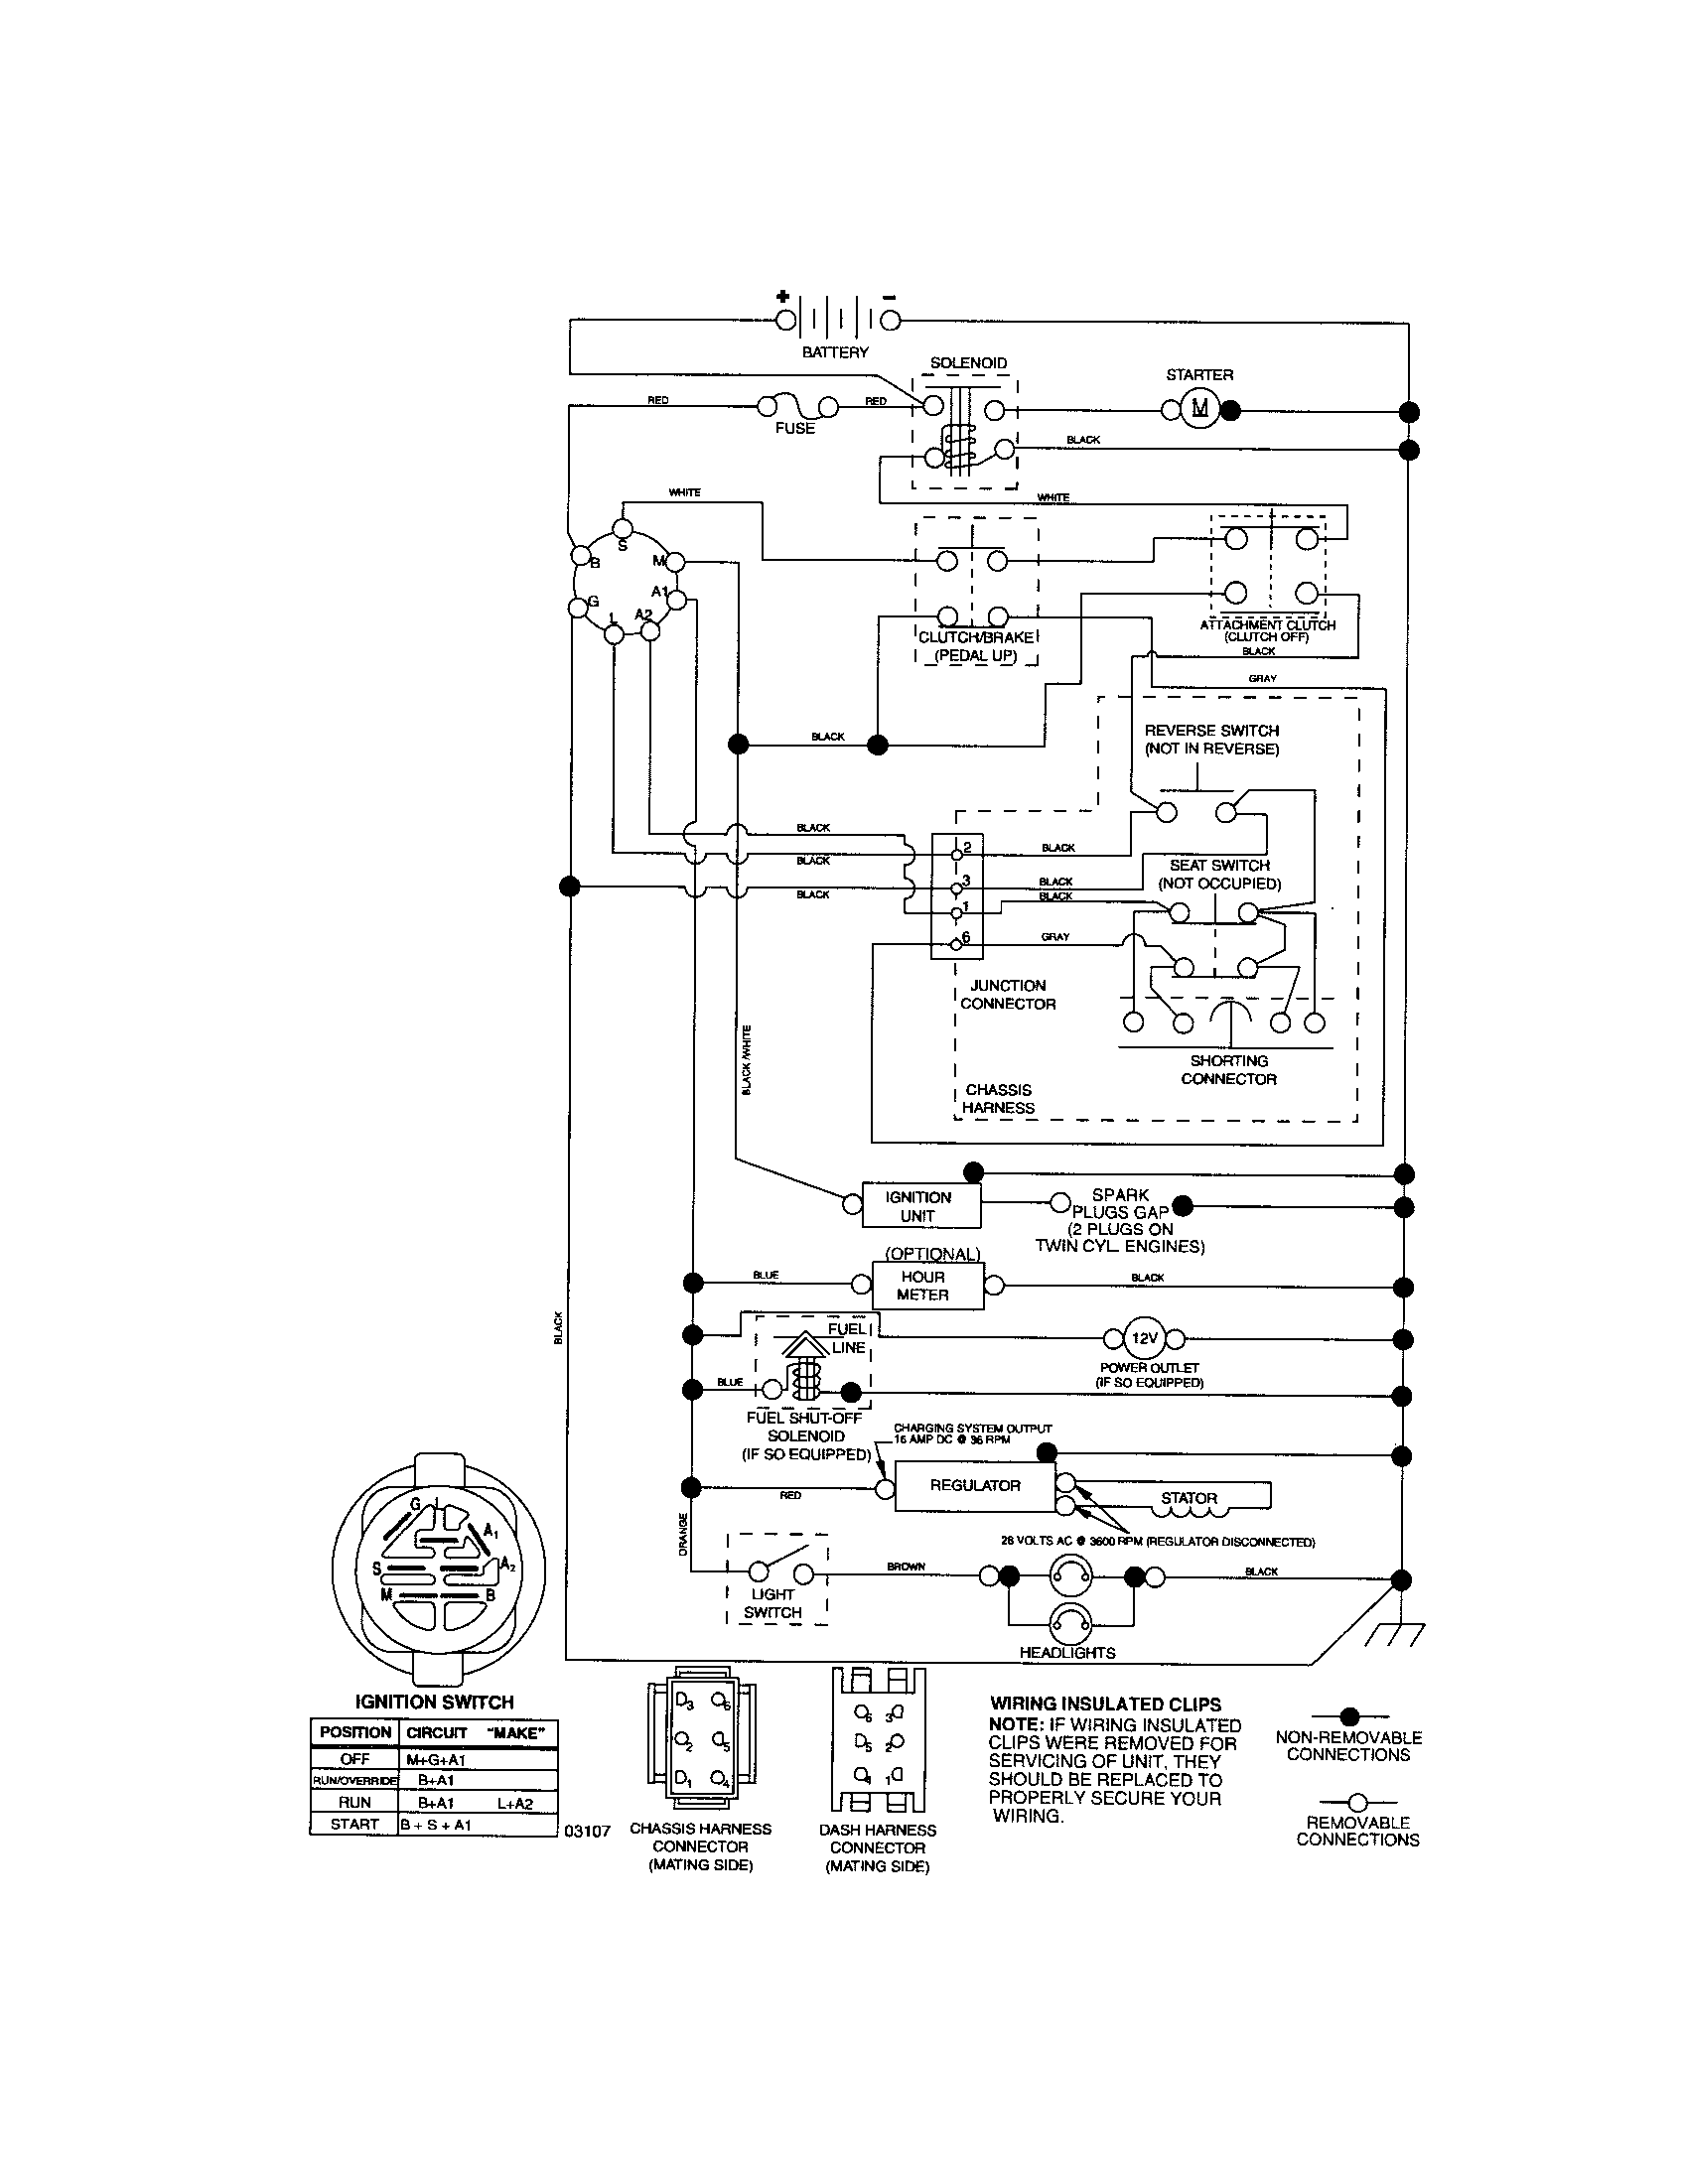 6af5f1447fd13c8443376822ddc1e105 craftsman riding mower electrical diagram wiring diagram Ford 3000 Tractor Wiring Harness Diagram at soozxer.org